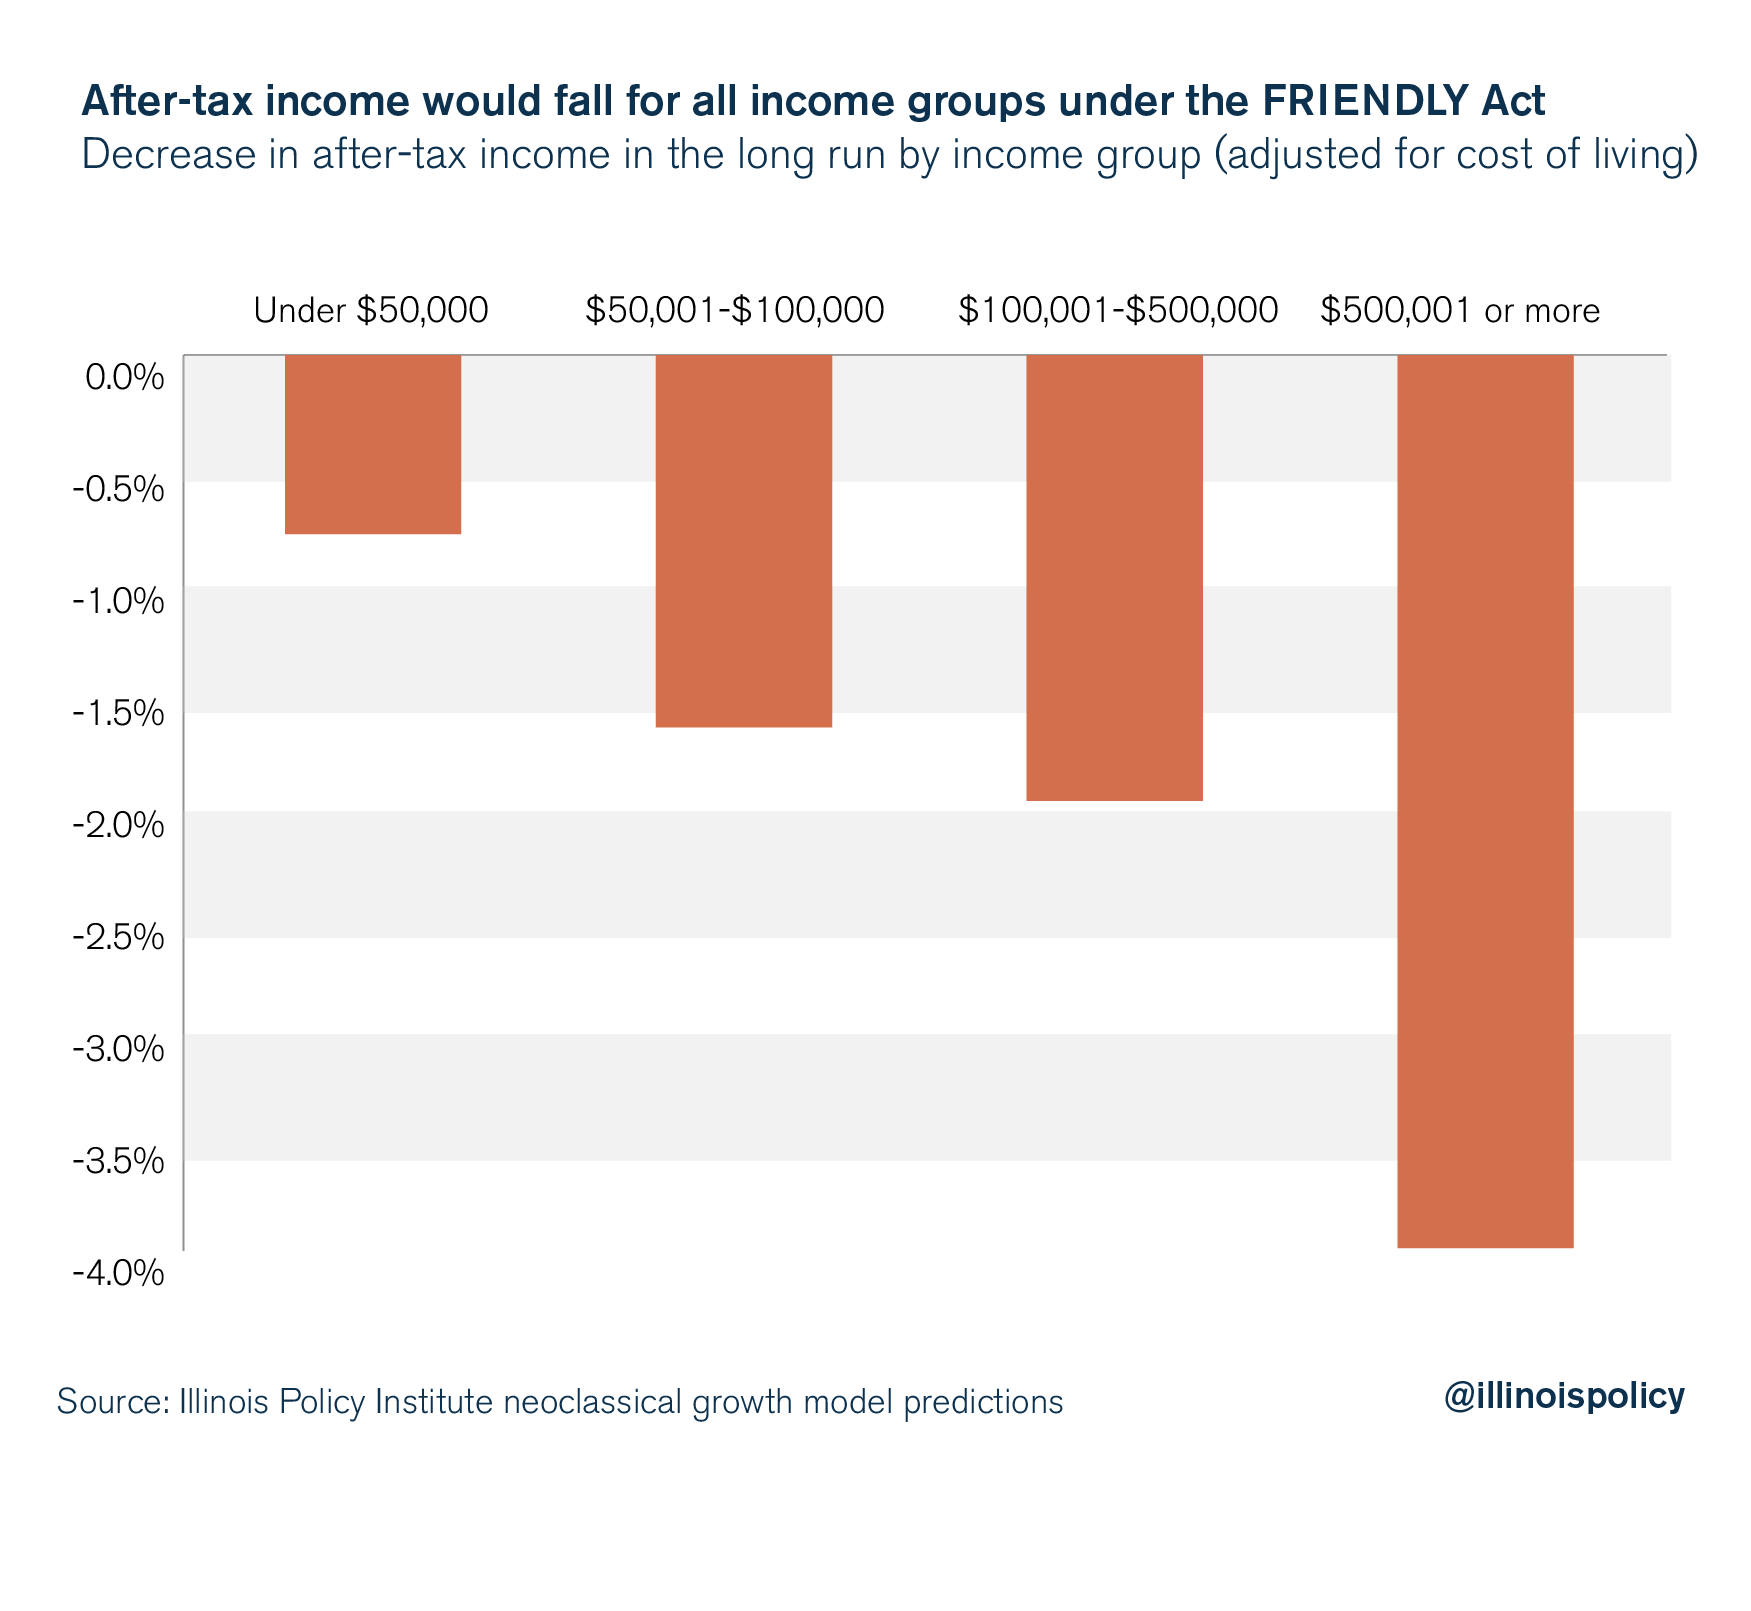 After-tax income would fall for all the income groups under the FRIENDLY Act